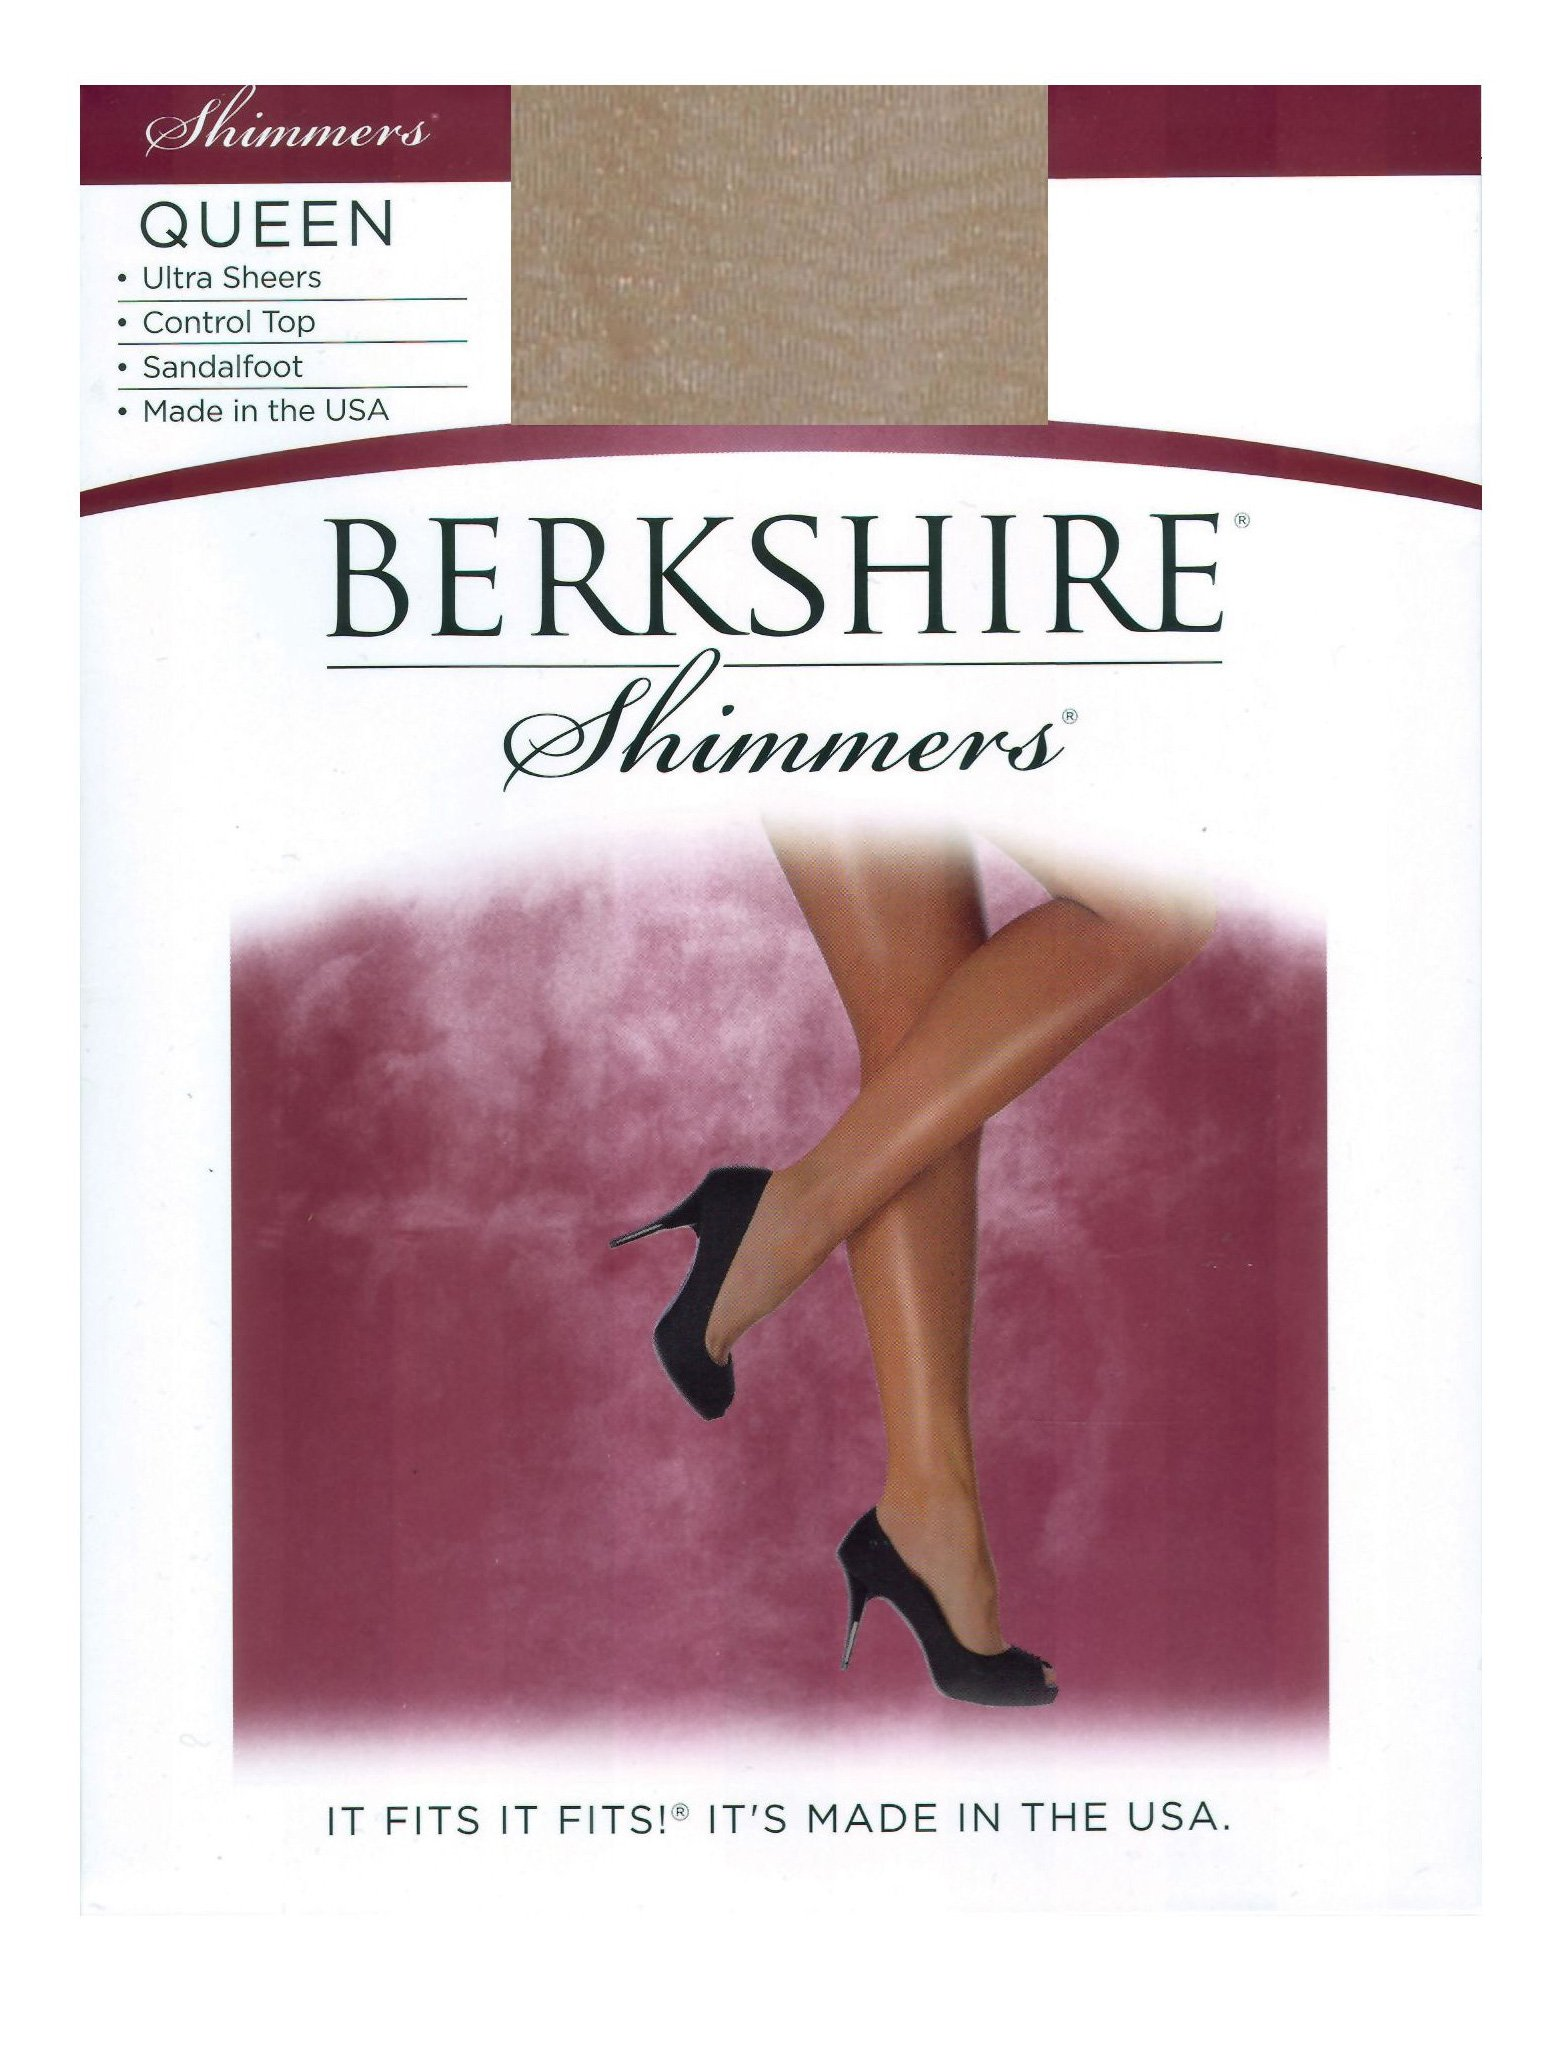 Berkshire Women's Plus-Size Queen Shimmers Ultra Sheer Control Top Pantyhose 4412,Champagne,QP